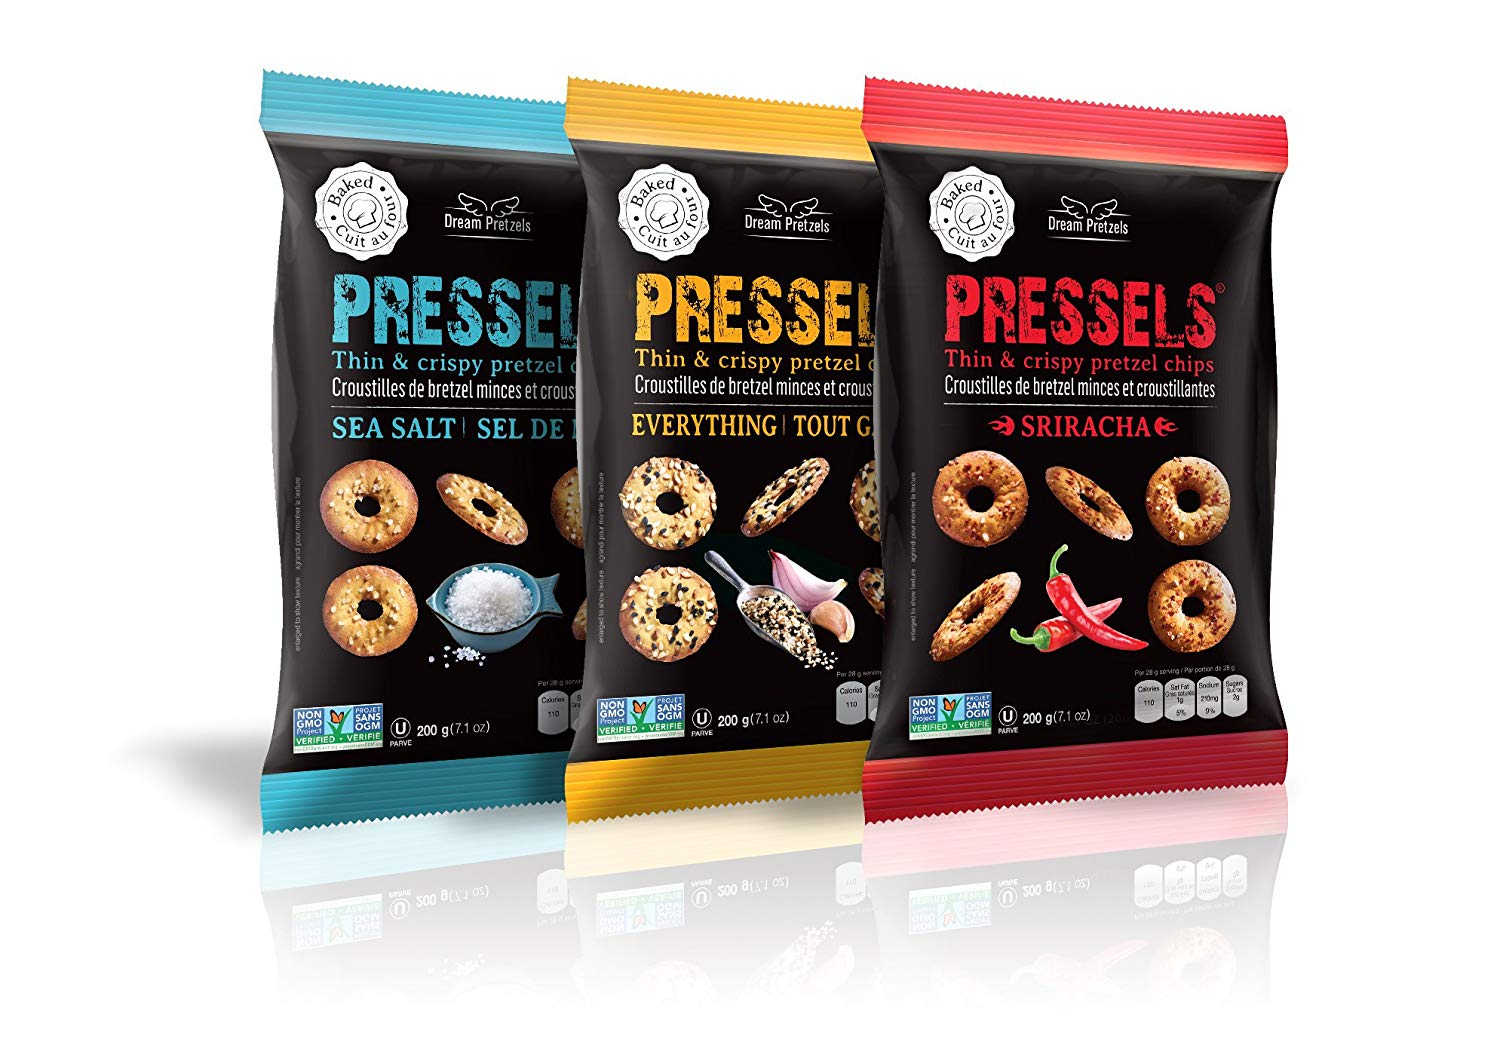 Pressels Compared to Snack Factory Pretzel Crisps